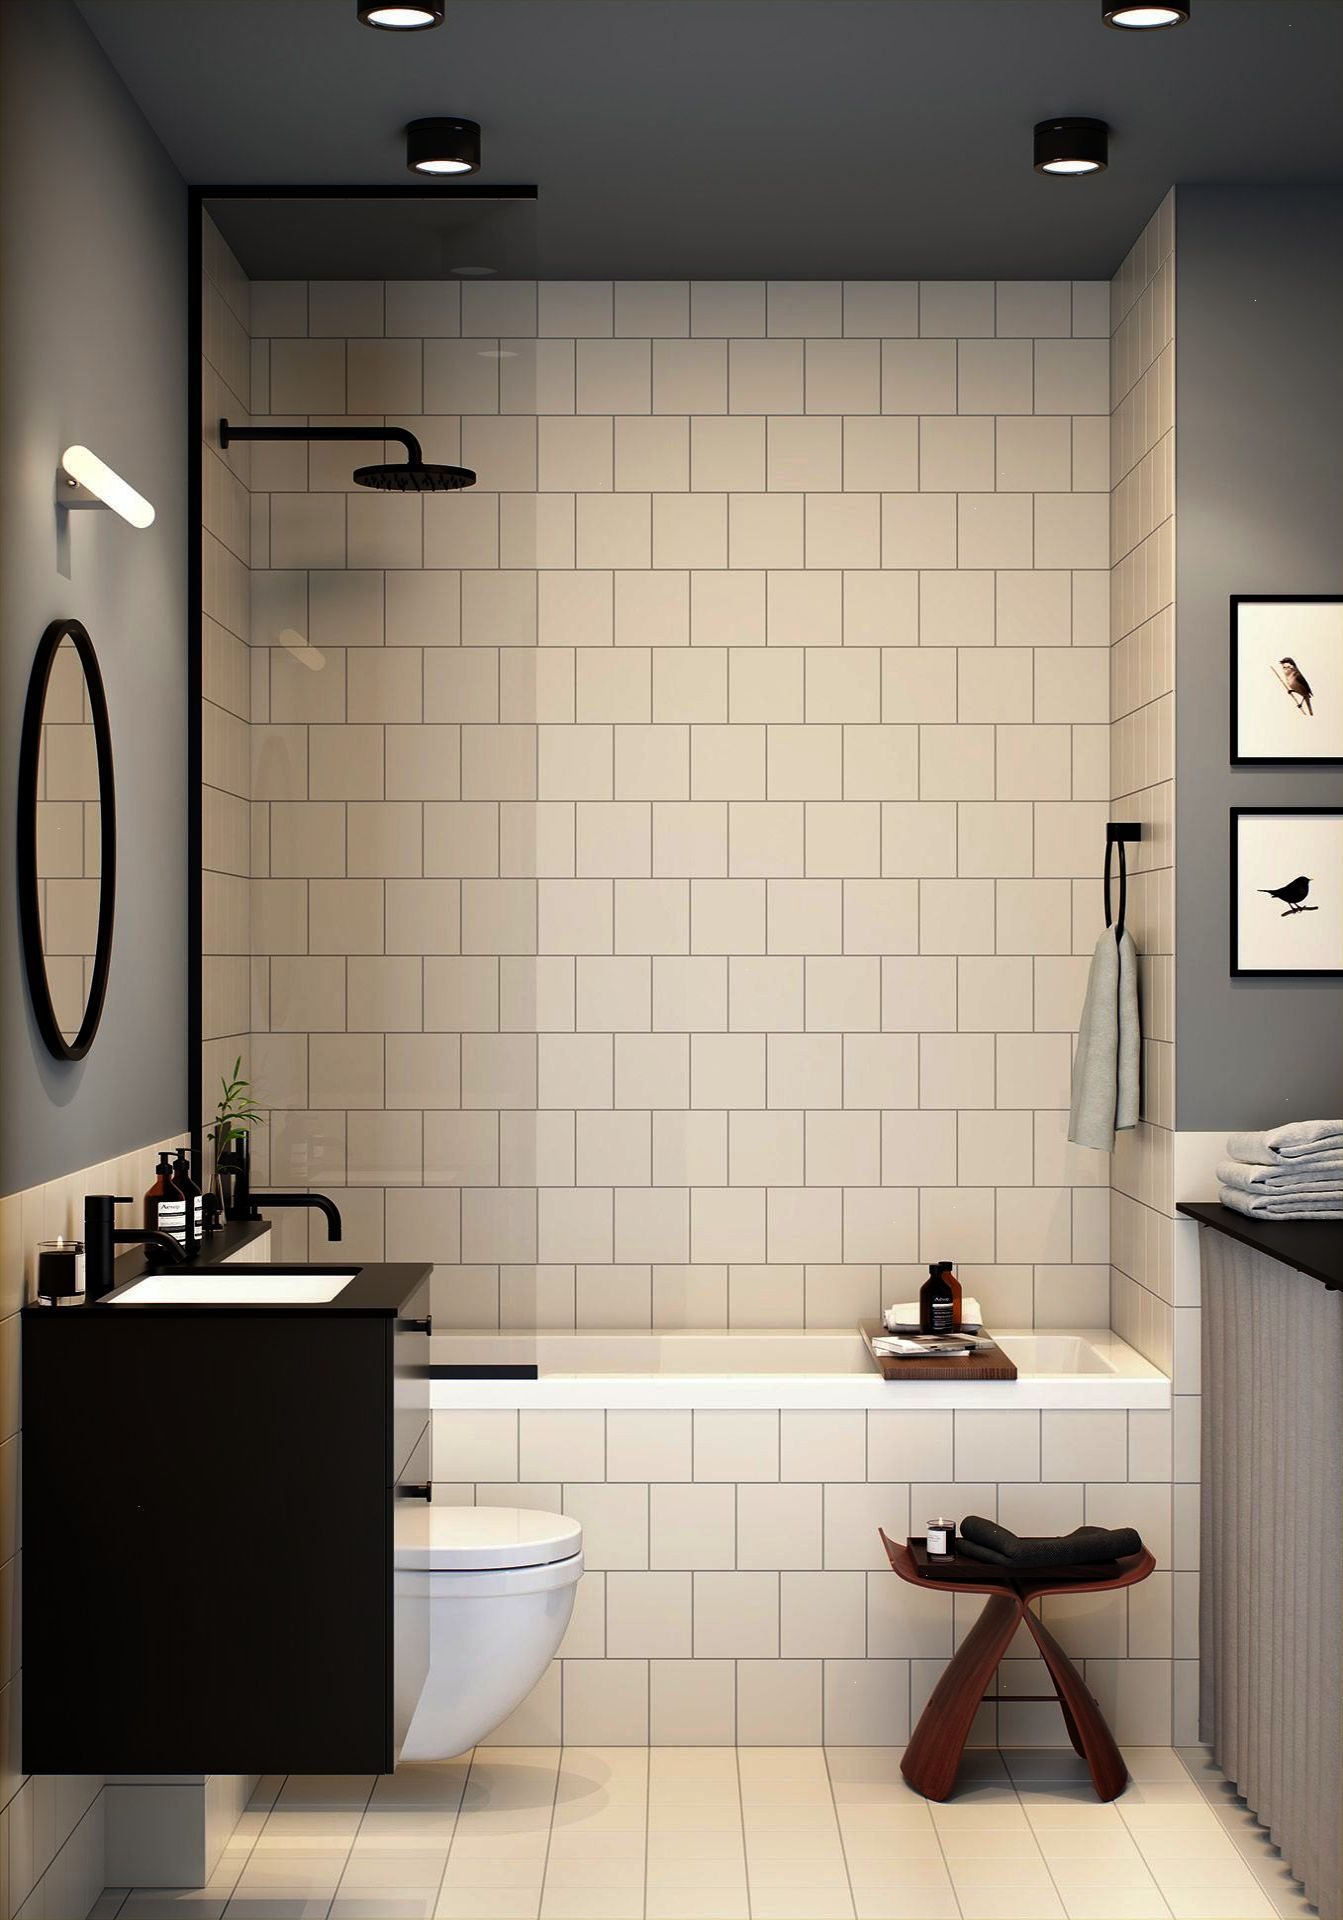 Whether It Is Teensy Shower Stall Powder Room Or A Small Bathroom A Not So Funct Bathroom Design Small Modern Small Bathroom Remodel Toilet And Bathroom Design